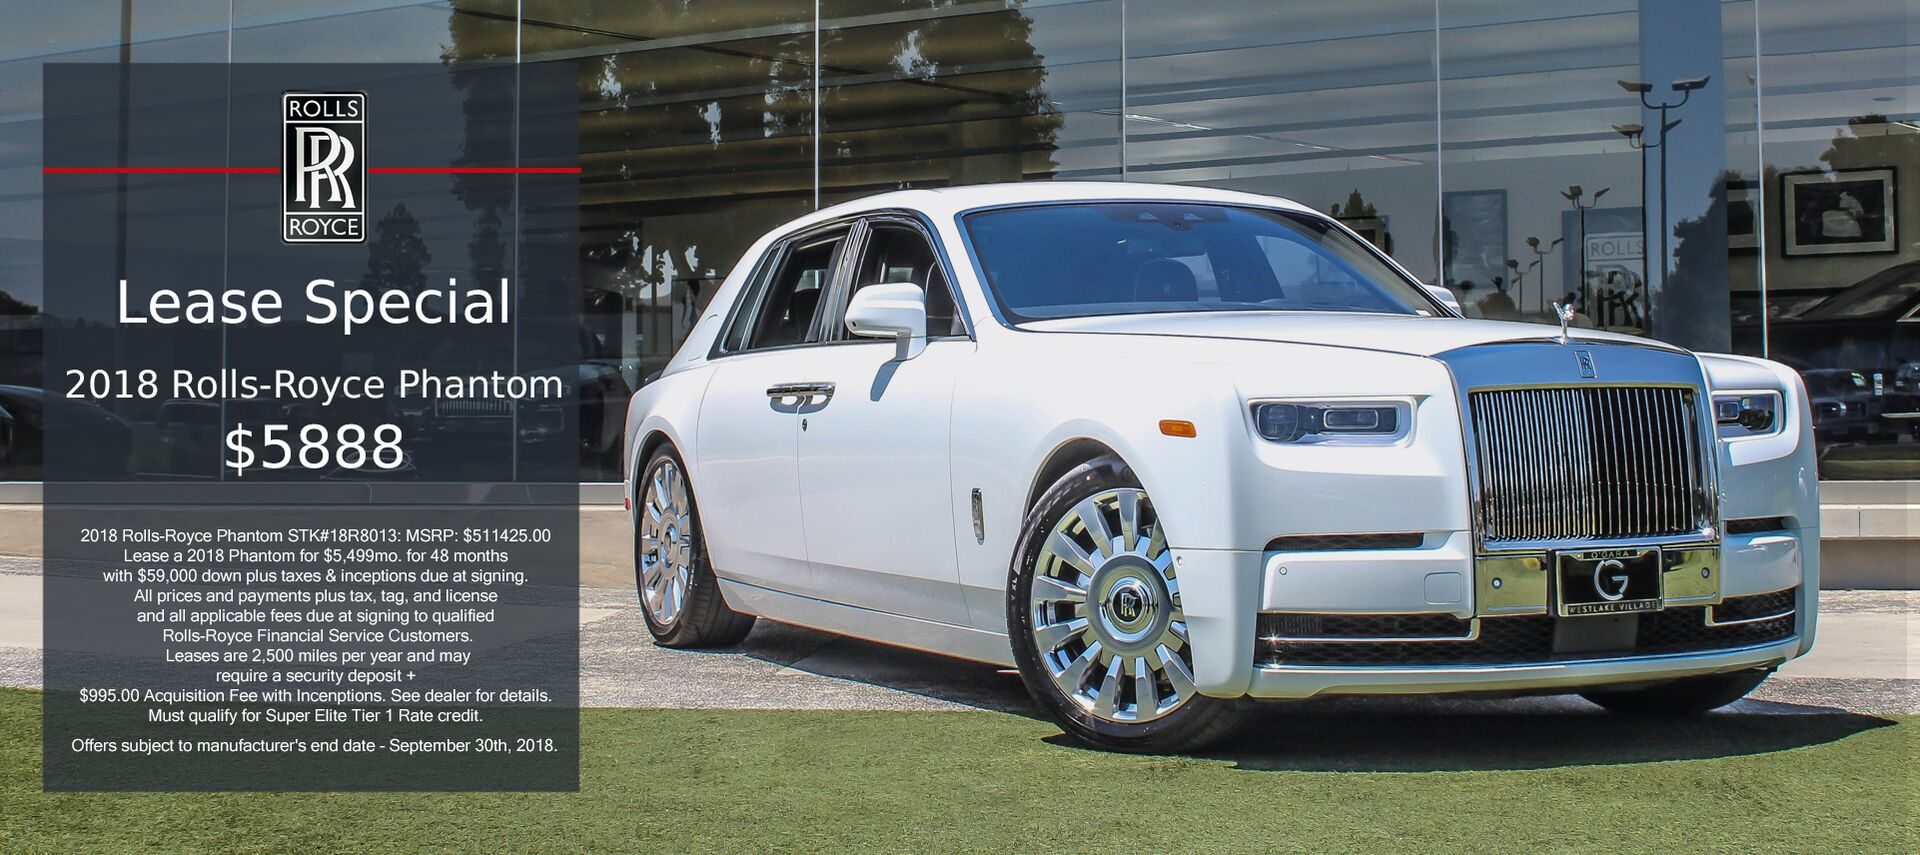 Rolls-Royce Phantom Lease